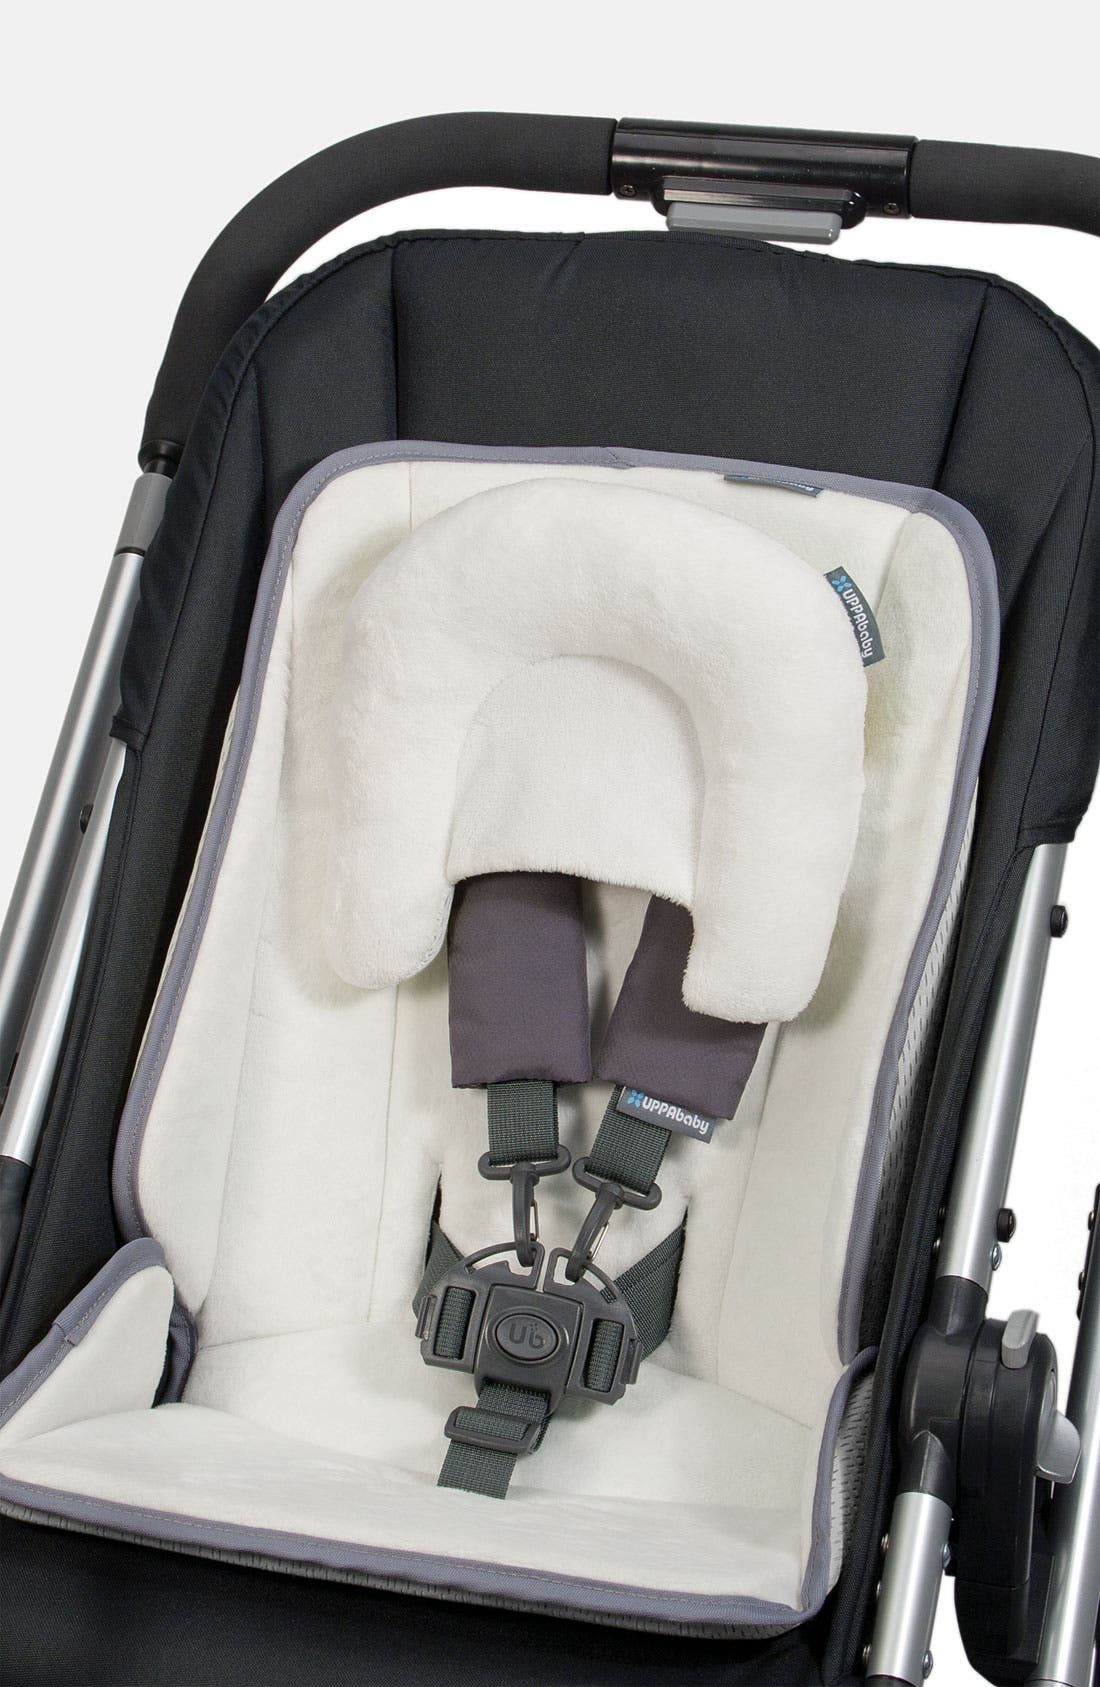 Main Image - UPPAbaby VISTA & CRUZ Stroller SnugSeat Toddler Seat Inset